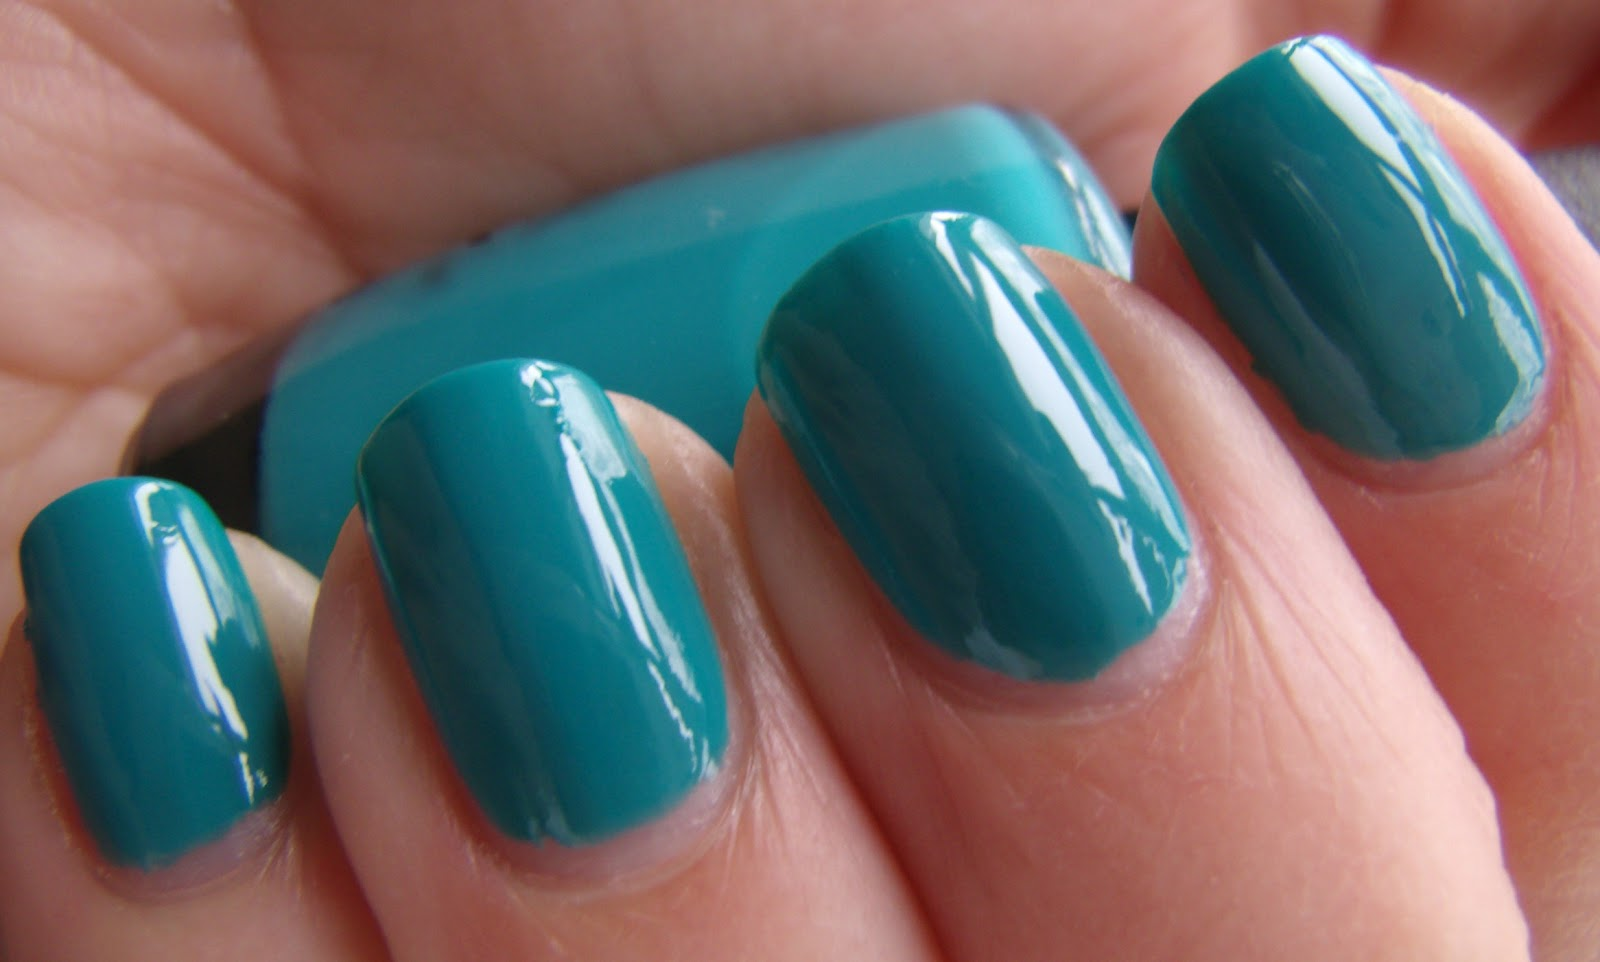 This Polish Is Sooooo Perfect It That Fabulous Creme Jelly Hybrid Formula Glides On So Easily And Shiny